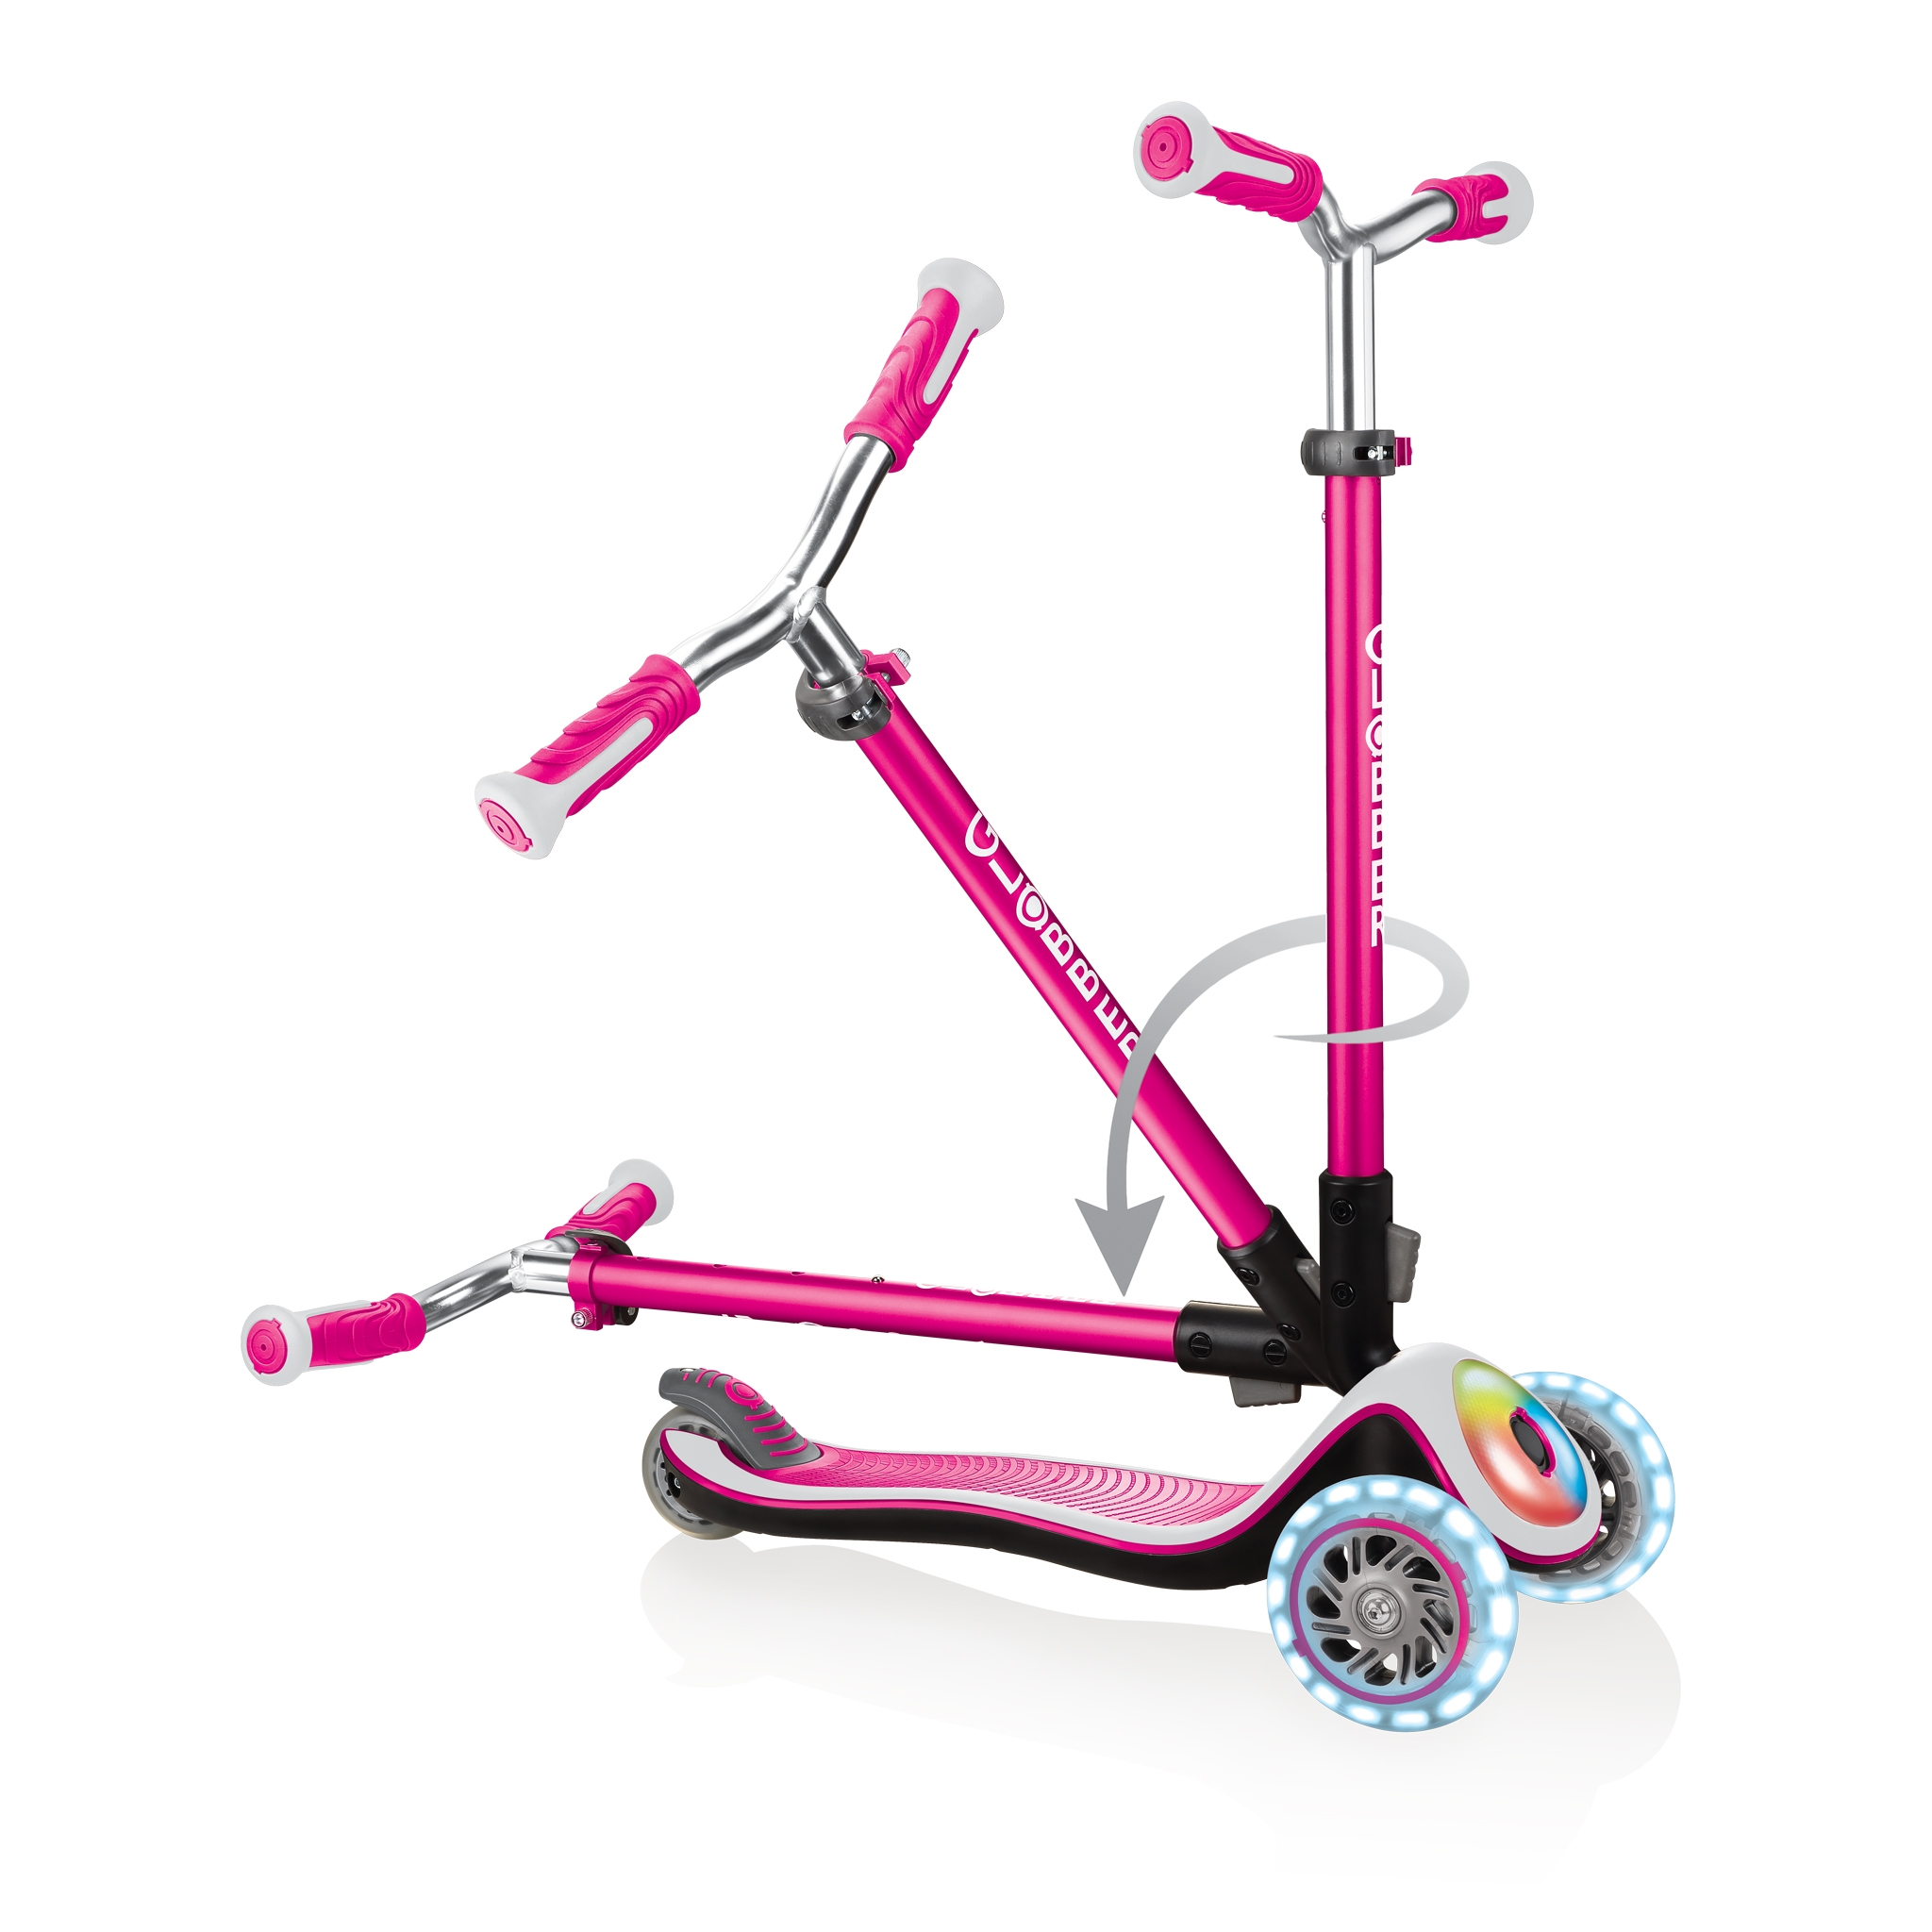 Globber-ELITE-PRIME-best-3-wheel-scooter-for-kids-with-patented-folding-system-pink